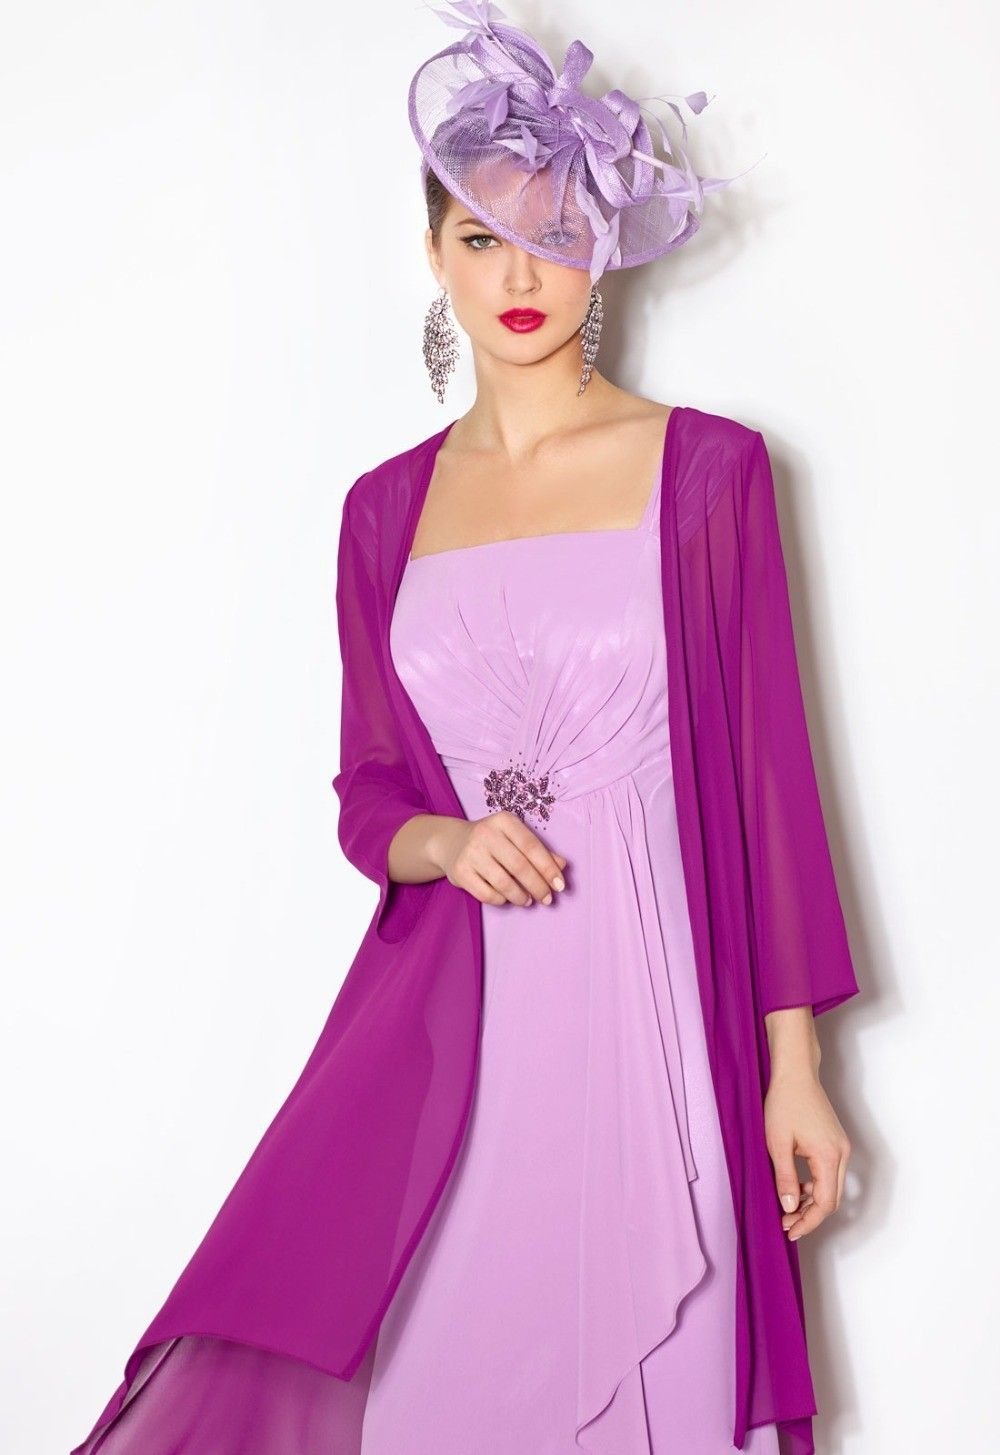 Wedding dress and jacket for guest  Click to Buy ucuc Modest Chiffon Mother of the Bride Dresses with